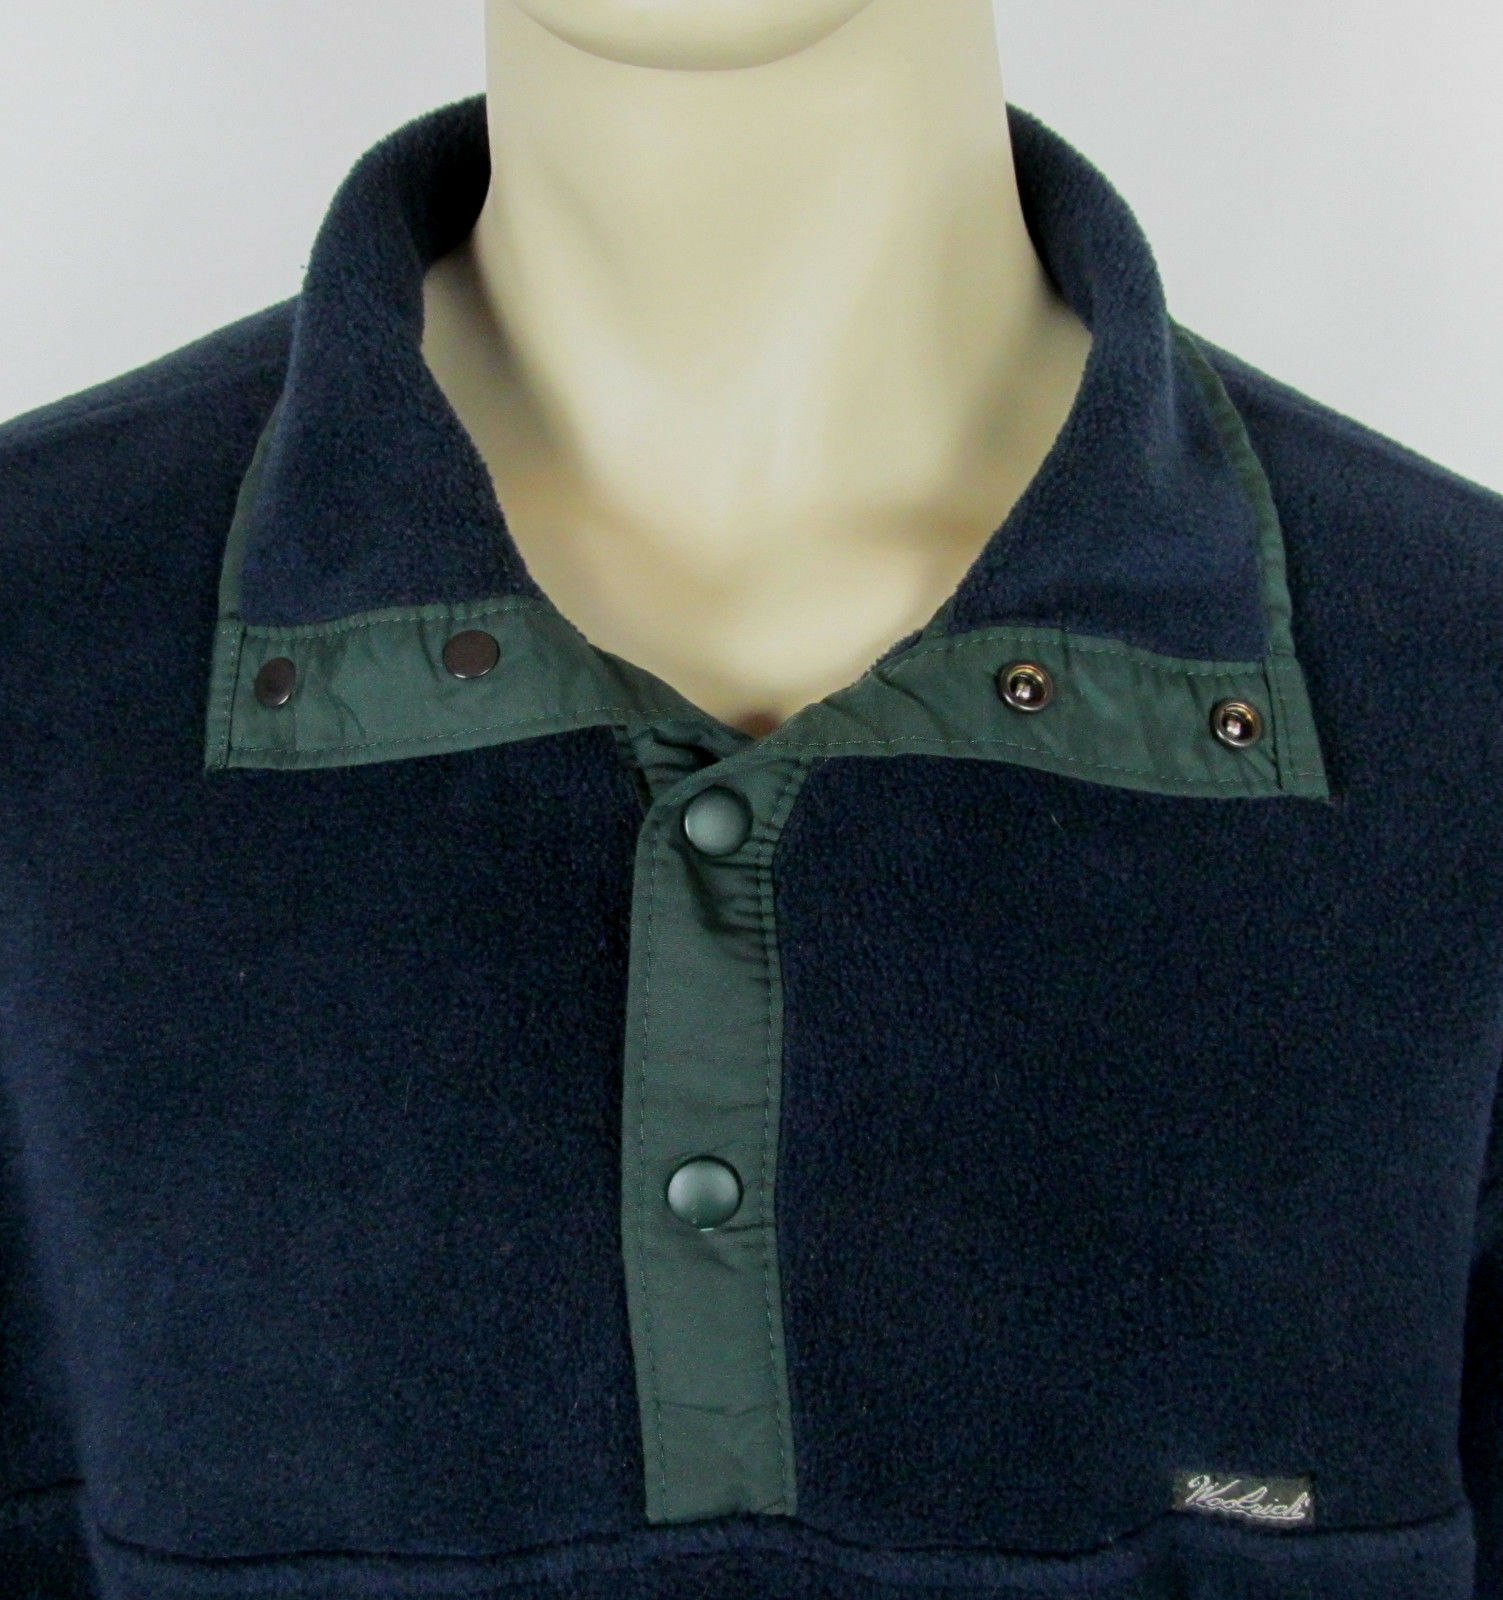 Woolrich Snap-T fleece jacket USA Made Navy Blue Mens Size L image 5